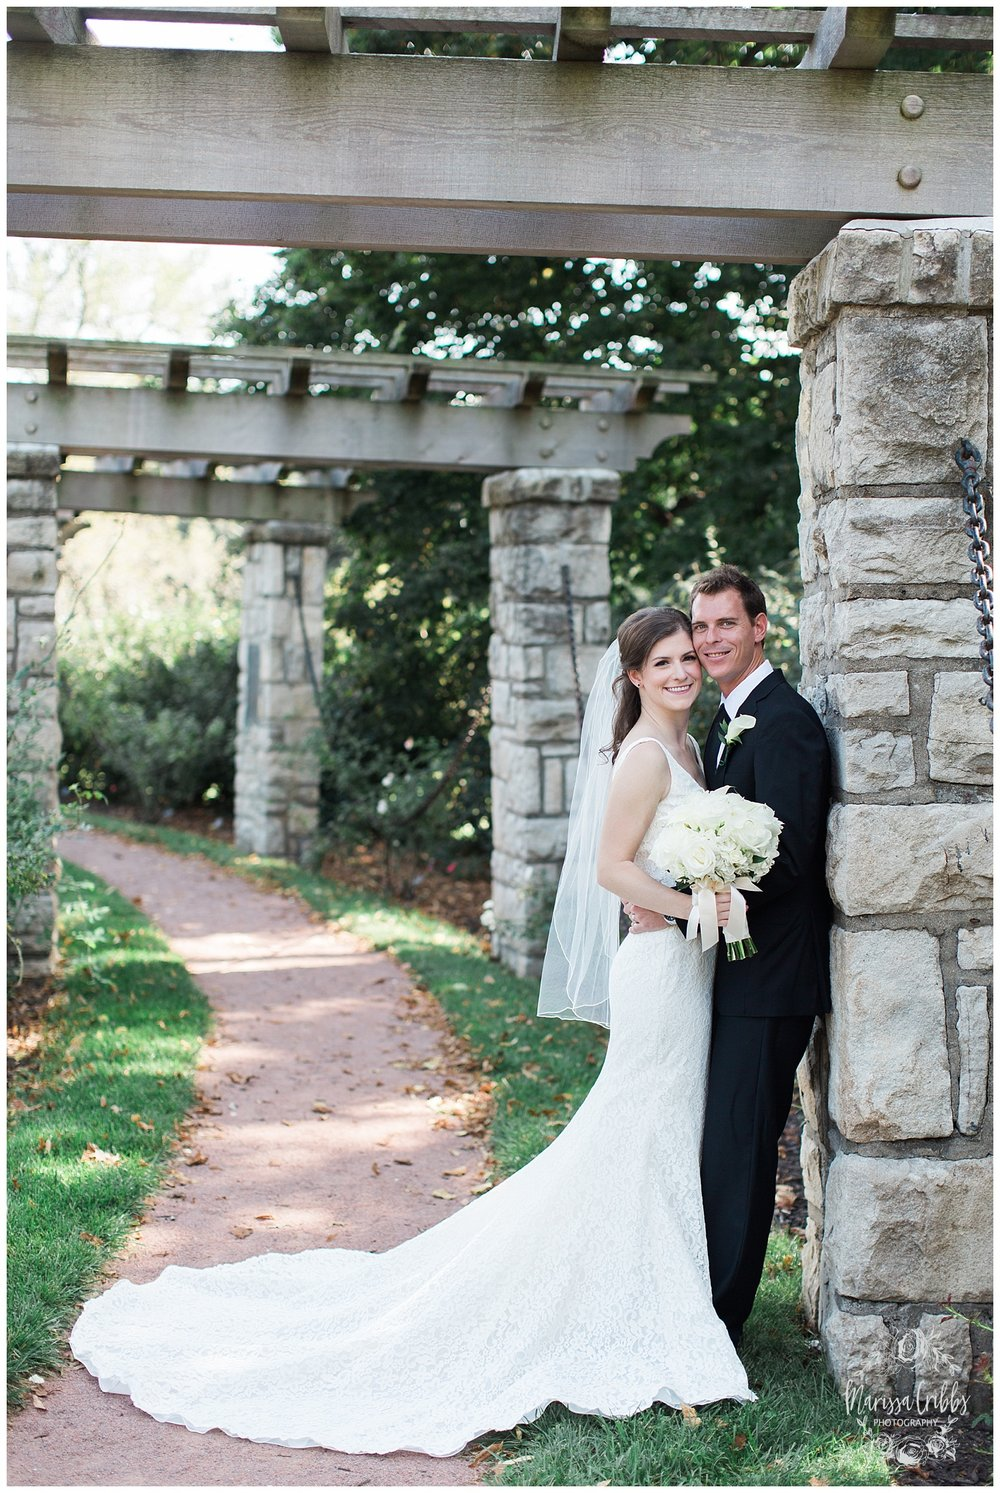 TERRACE ON GRAND WEDDING | MEGHAN & DAVYD | MARISSA CRIBBS PHOTOGRAPHY | CELEEBRATIONS OF LOVE_2940.jpg